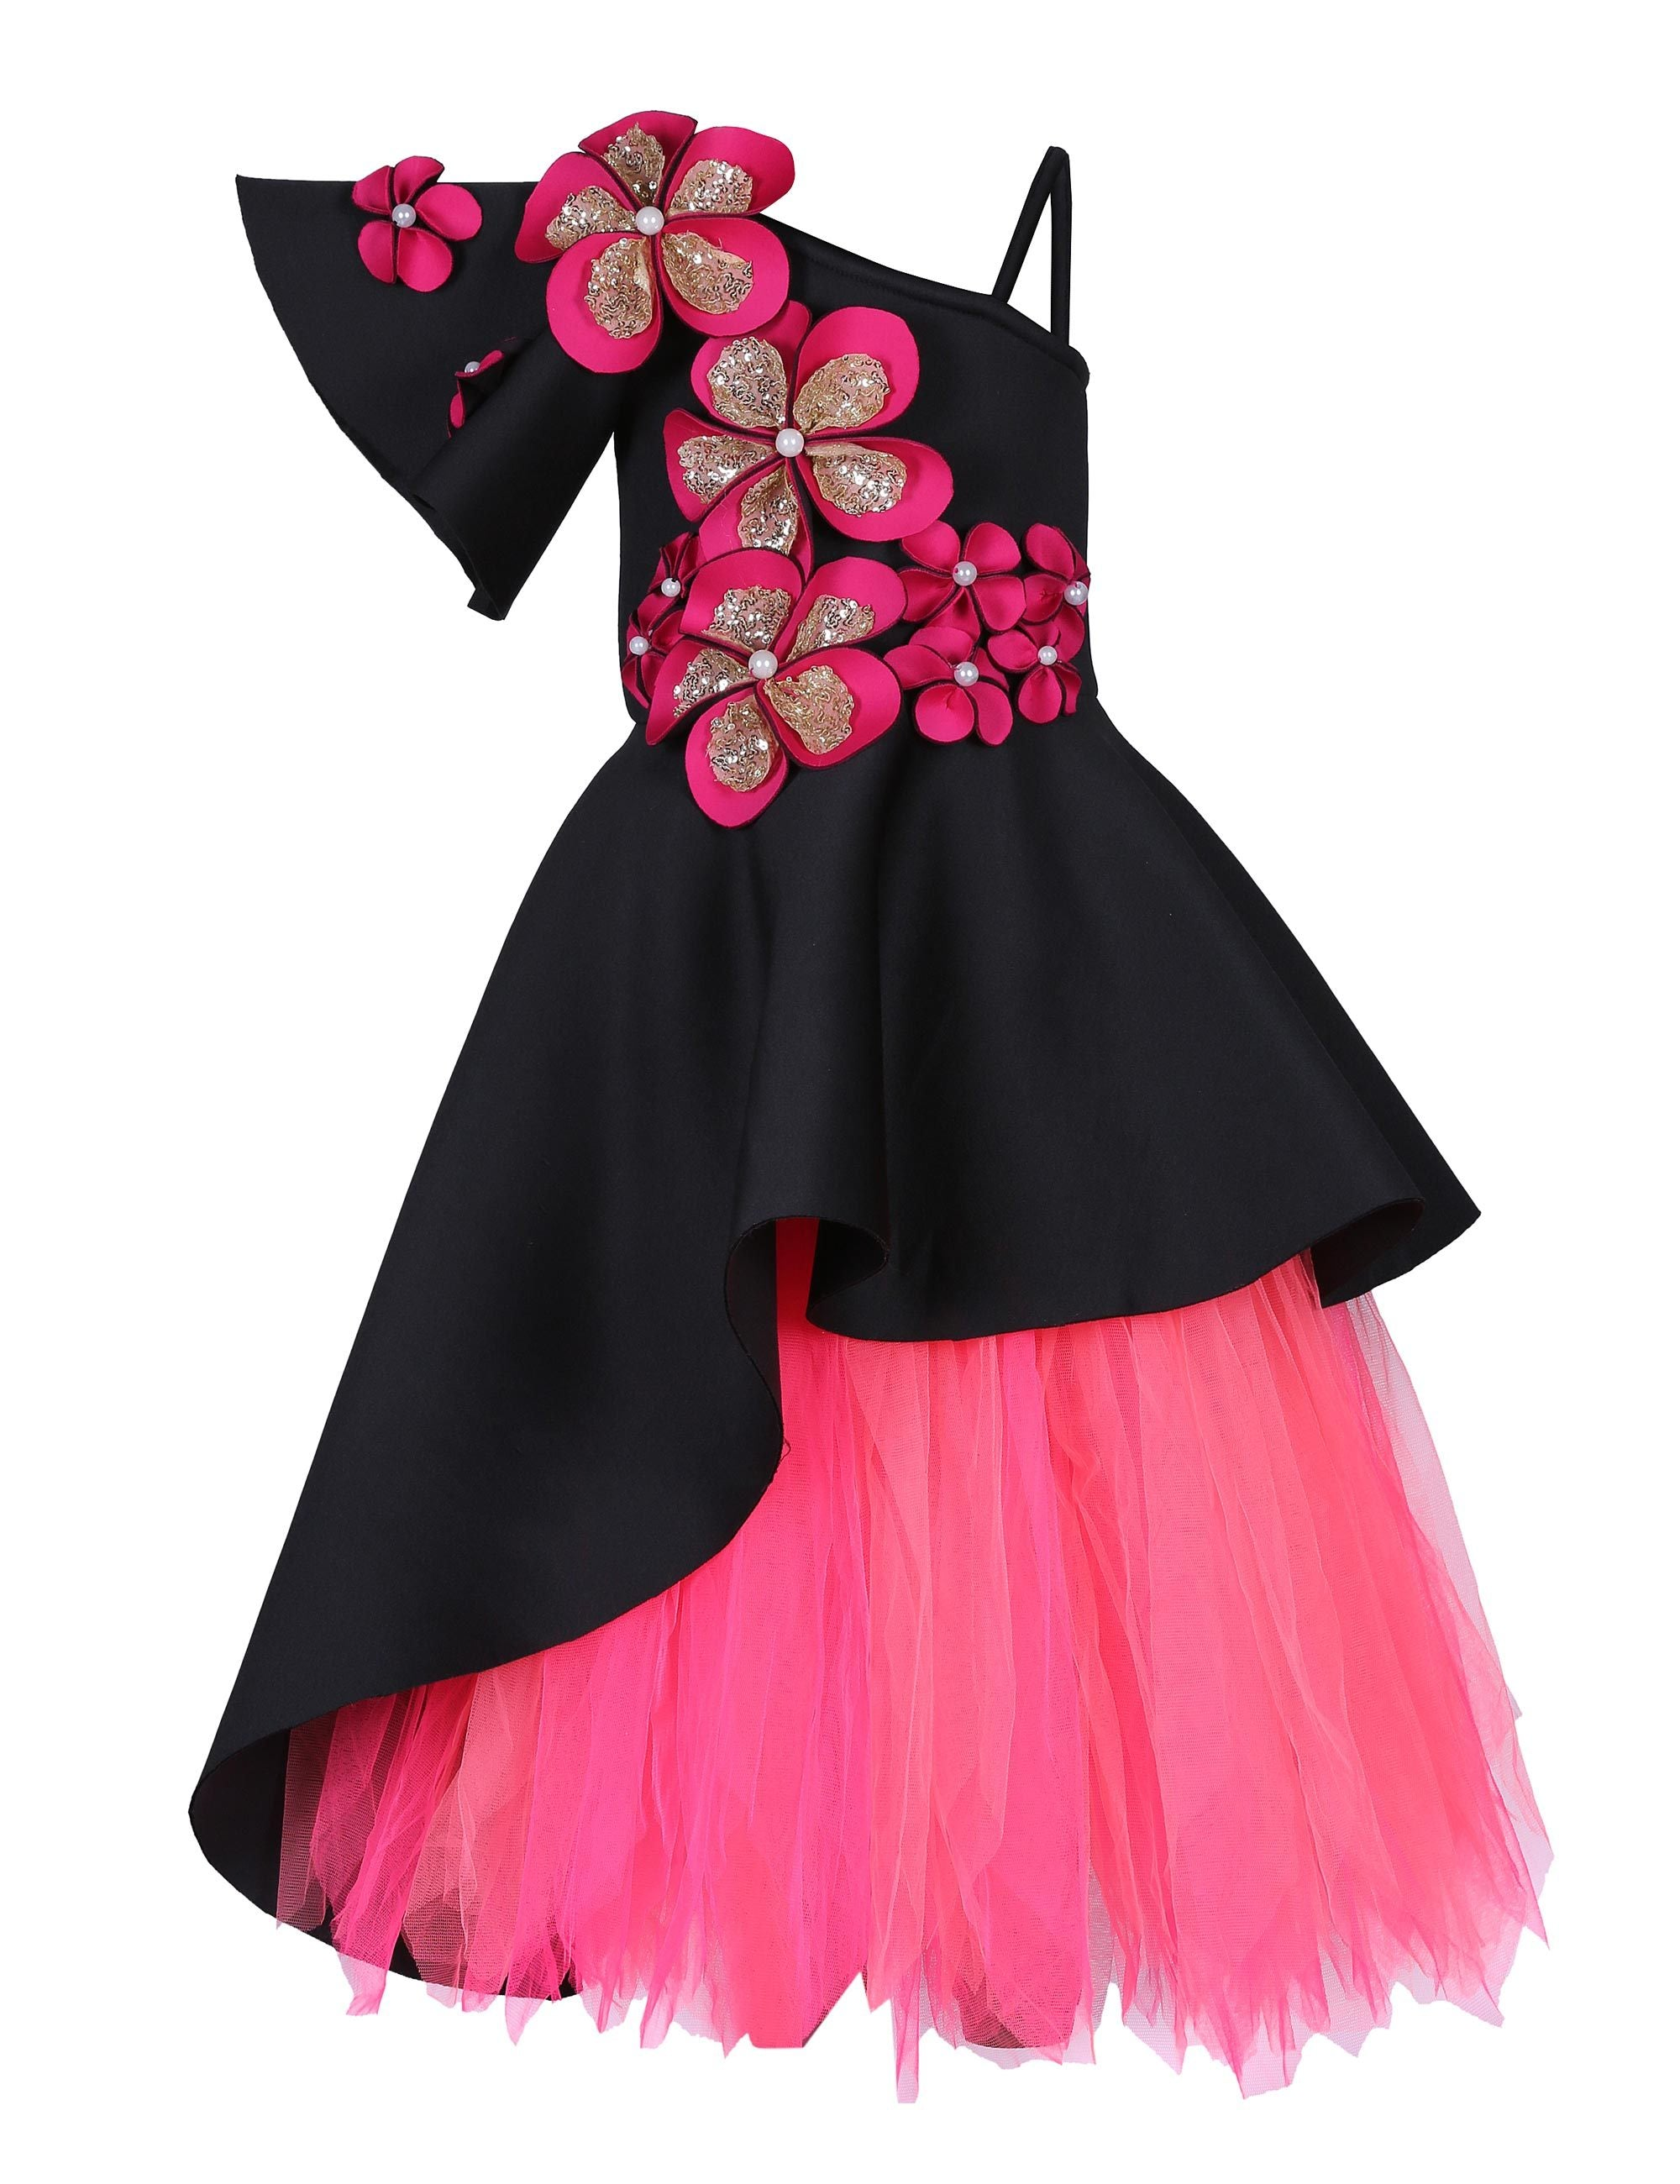 Black Triple Layered Corset with Pink Tutu Skirt Gown